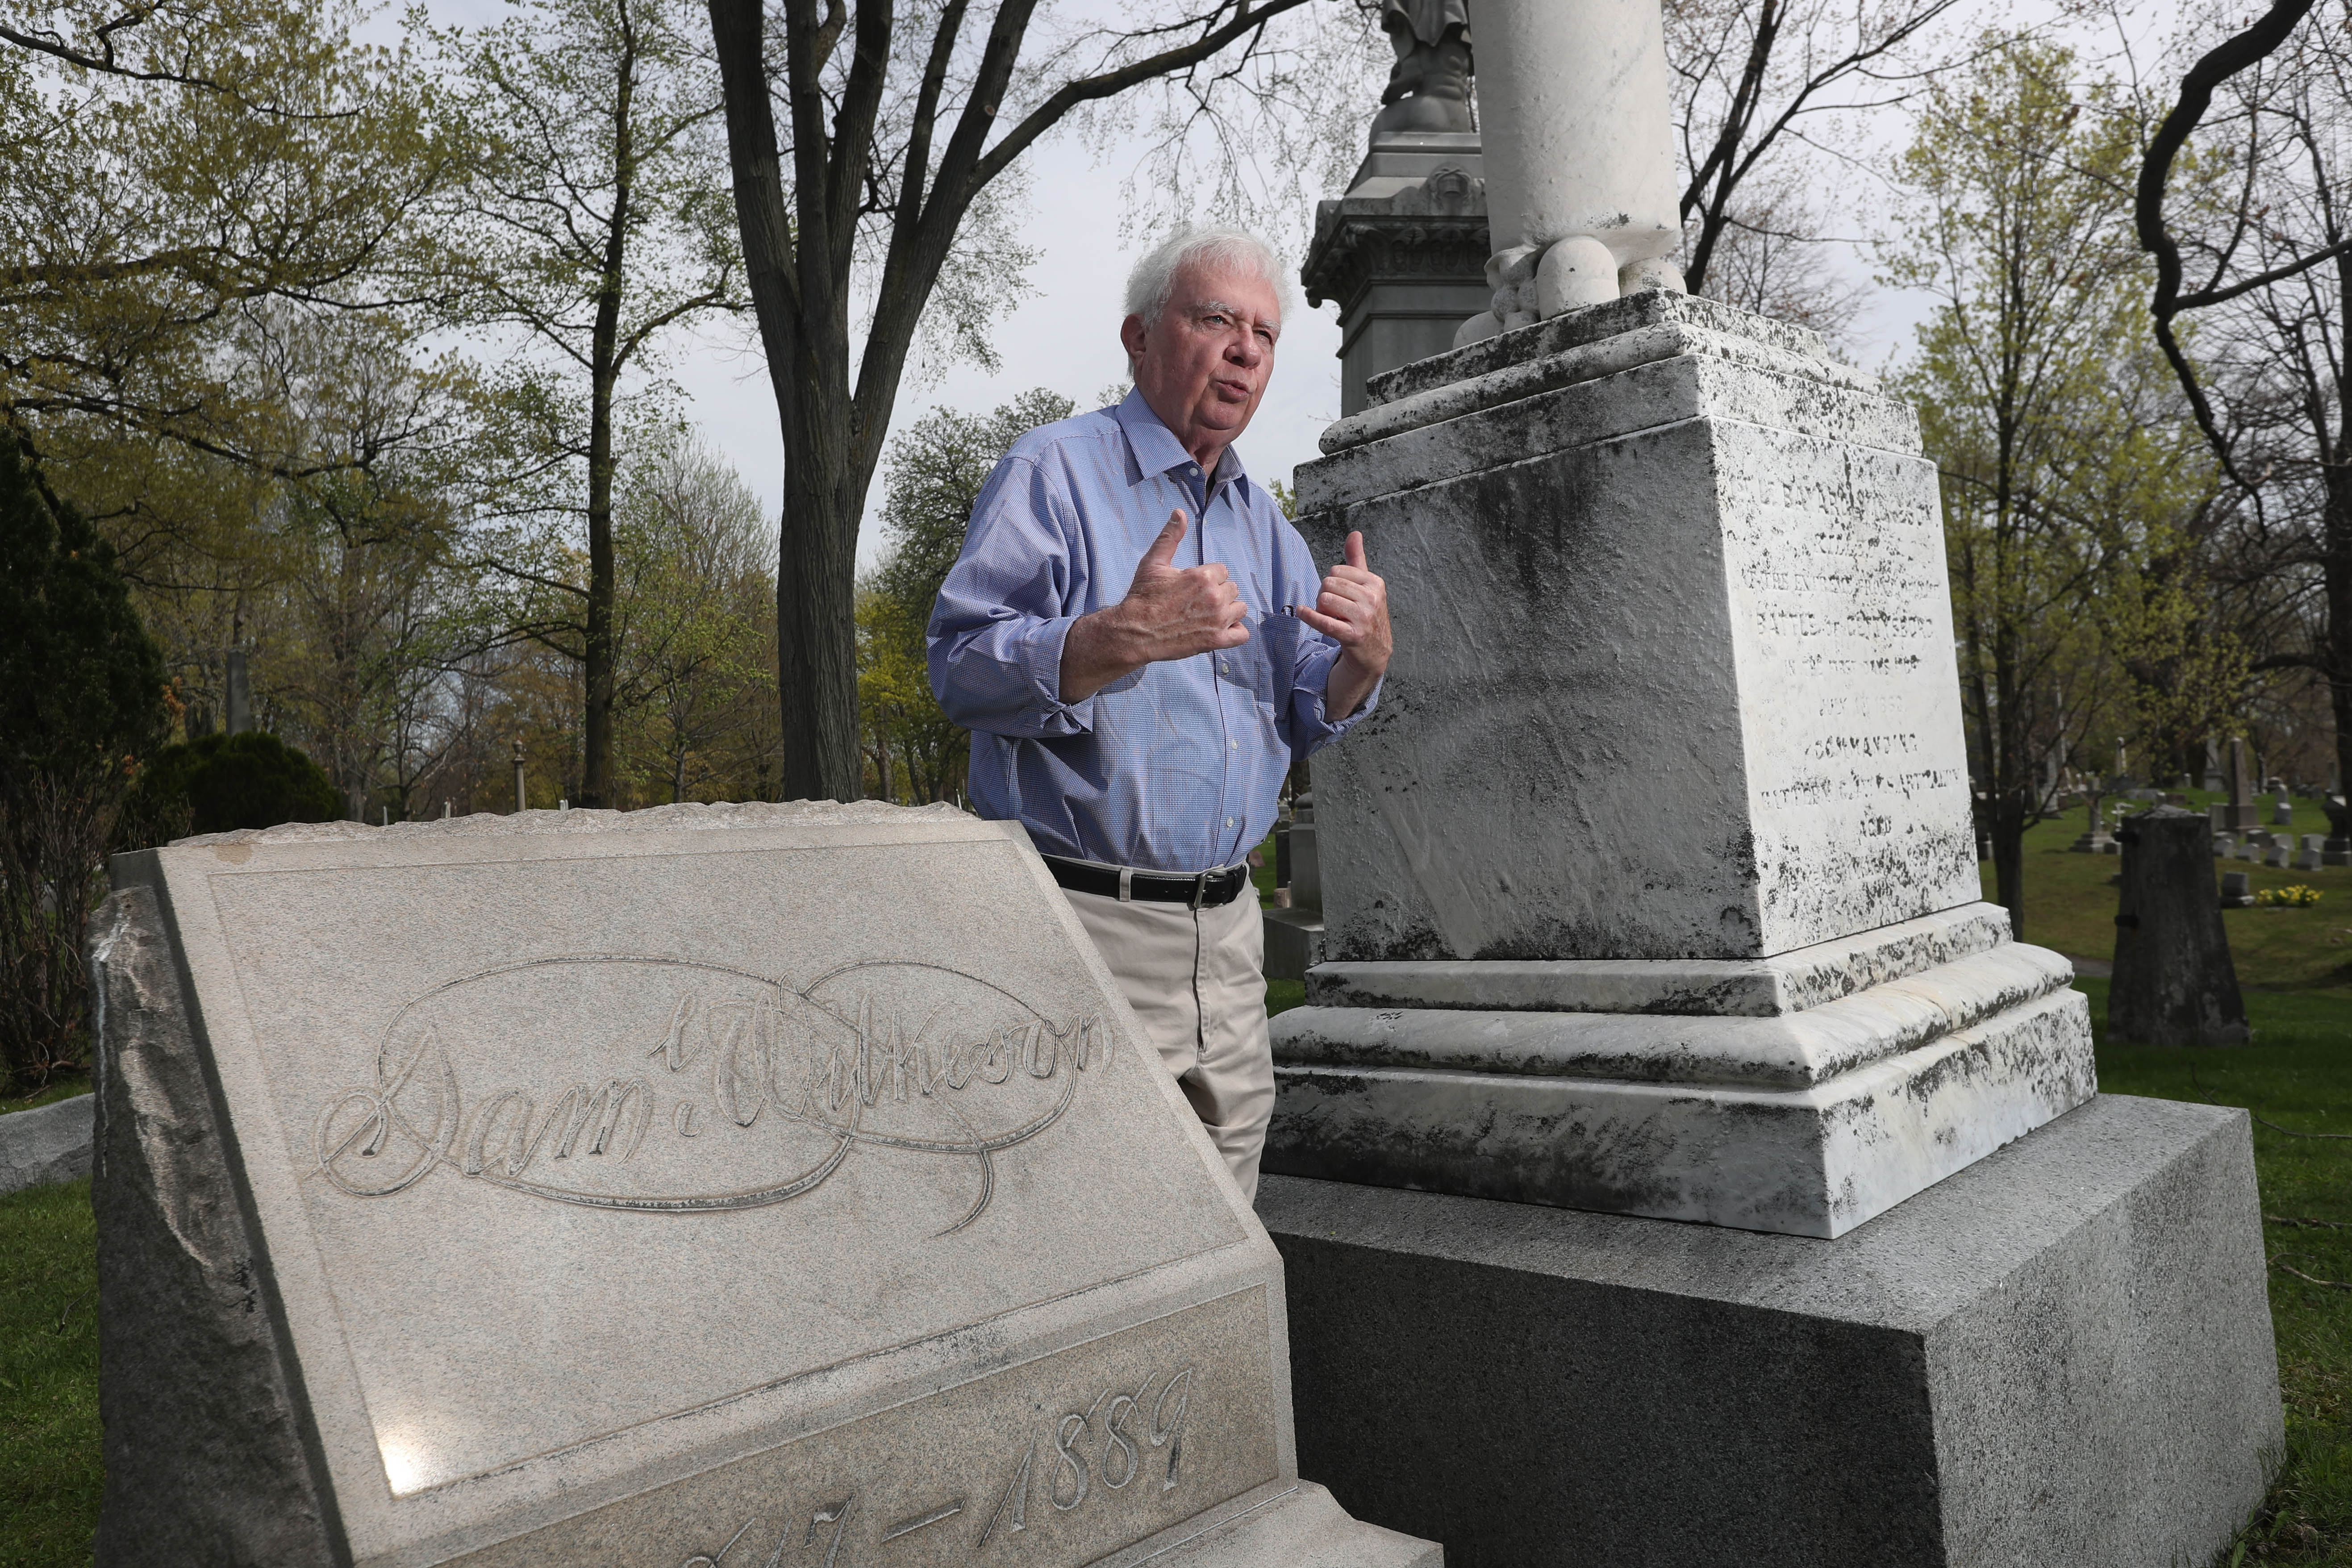 Henry Pogodzinski, who leads a summertime Civil War tour of Forest Lawn Cemetery, stands at the graves of Samuel Wilkeson Jr., left,  and his son Bayard Wilkeson. (Sharon Cantillon/Buffalo News)